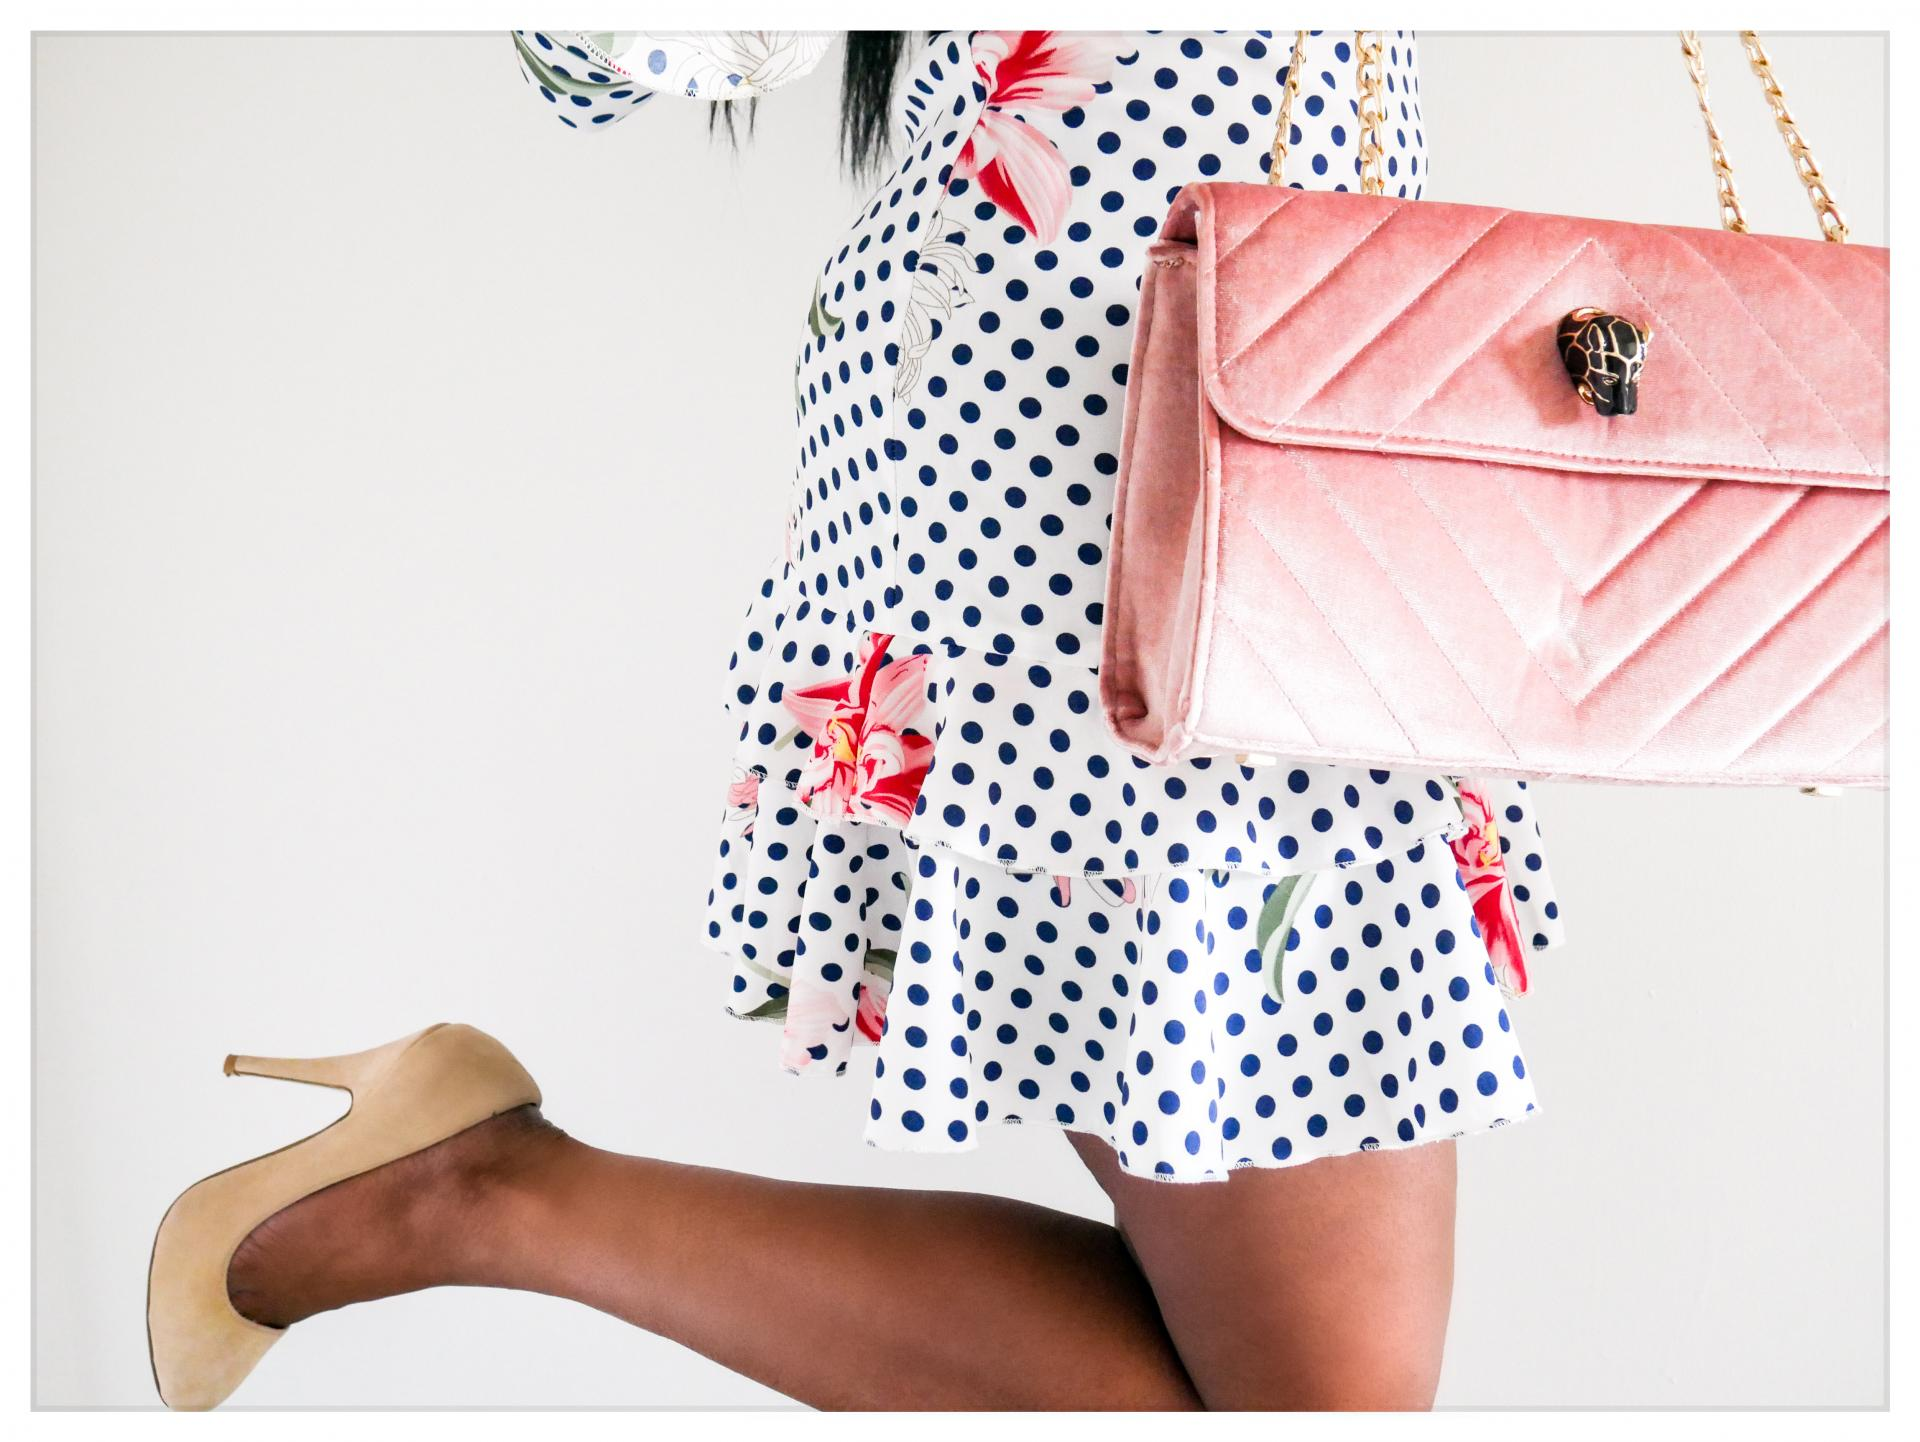 How to wear polka dots  Polka dots are a really versatile, wearable fabric trend to wear  Here we have loads of inspiration for how to wear polka dots in a variety of styles   kittyandb.com #polkadots #fashioninspiration #outfitideas